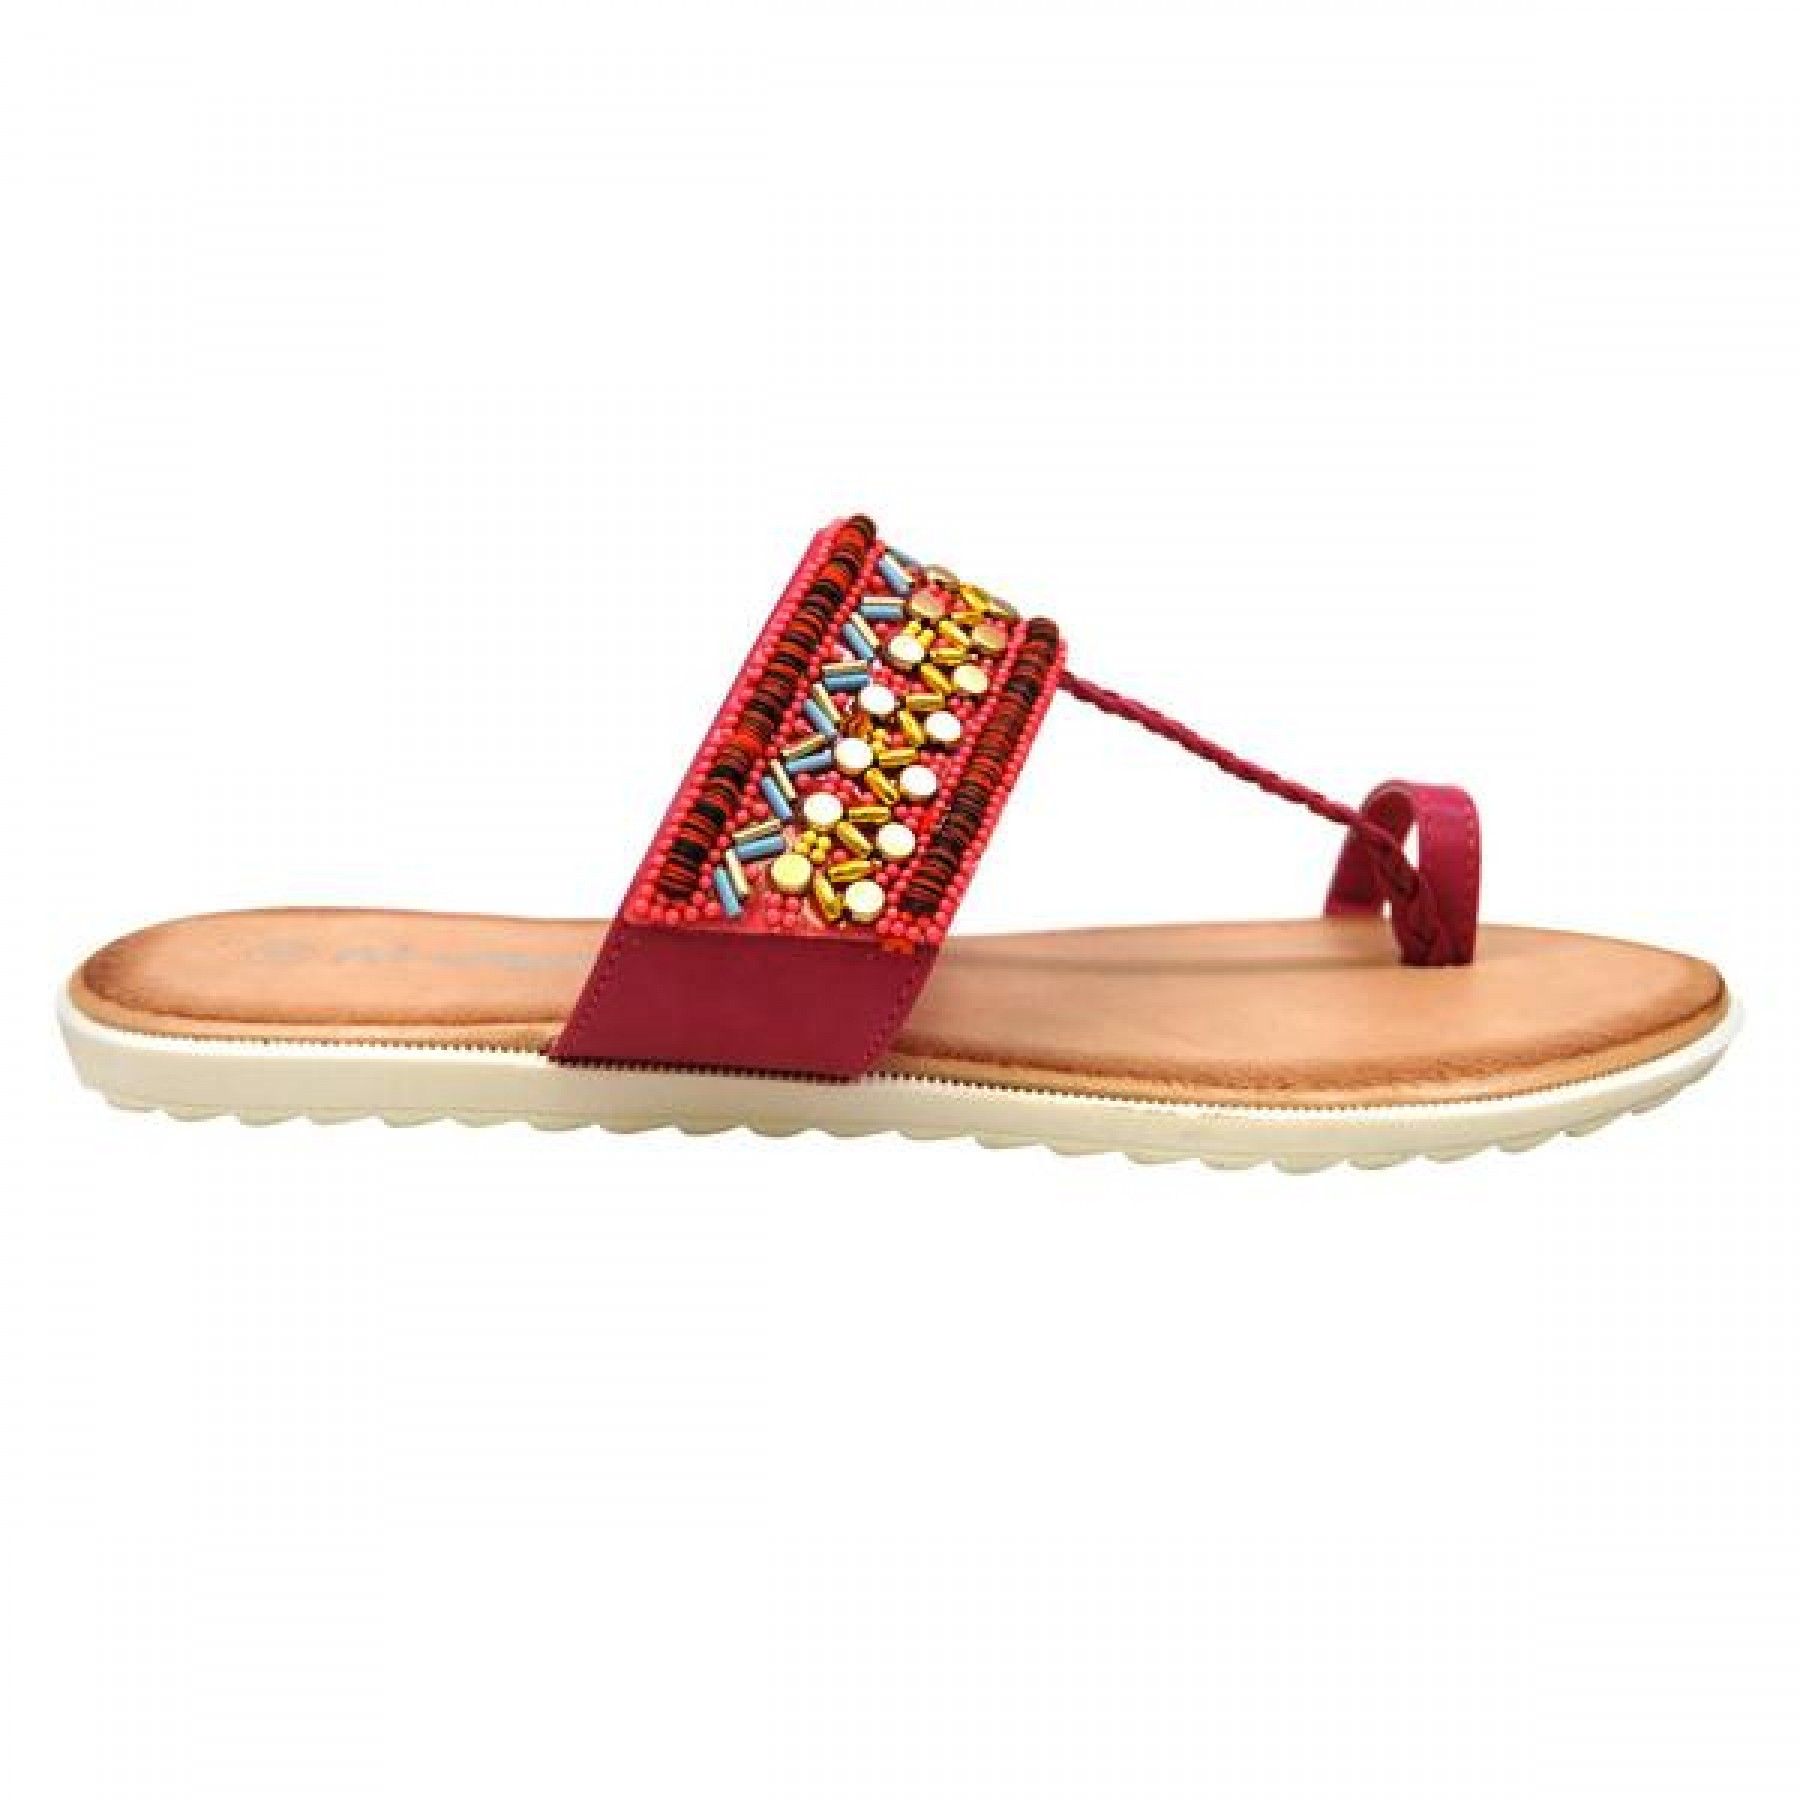 Women's Fuchsia Manmade Roebella Toe Ring Sandal with Gorgeous Beaded Strap